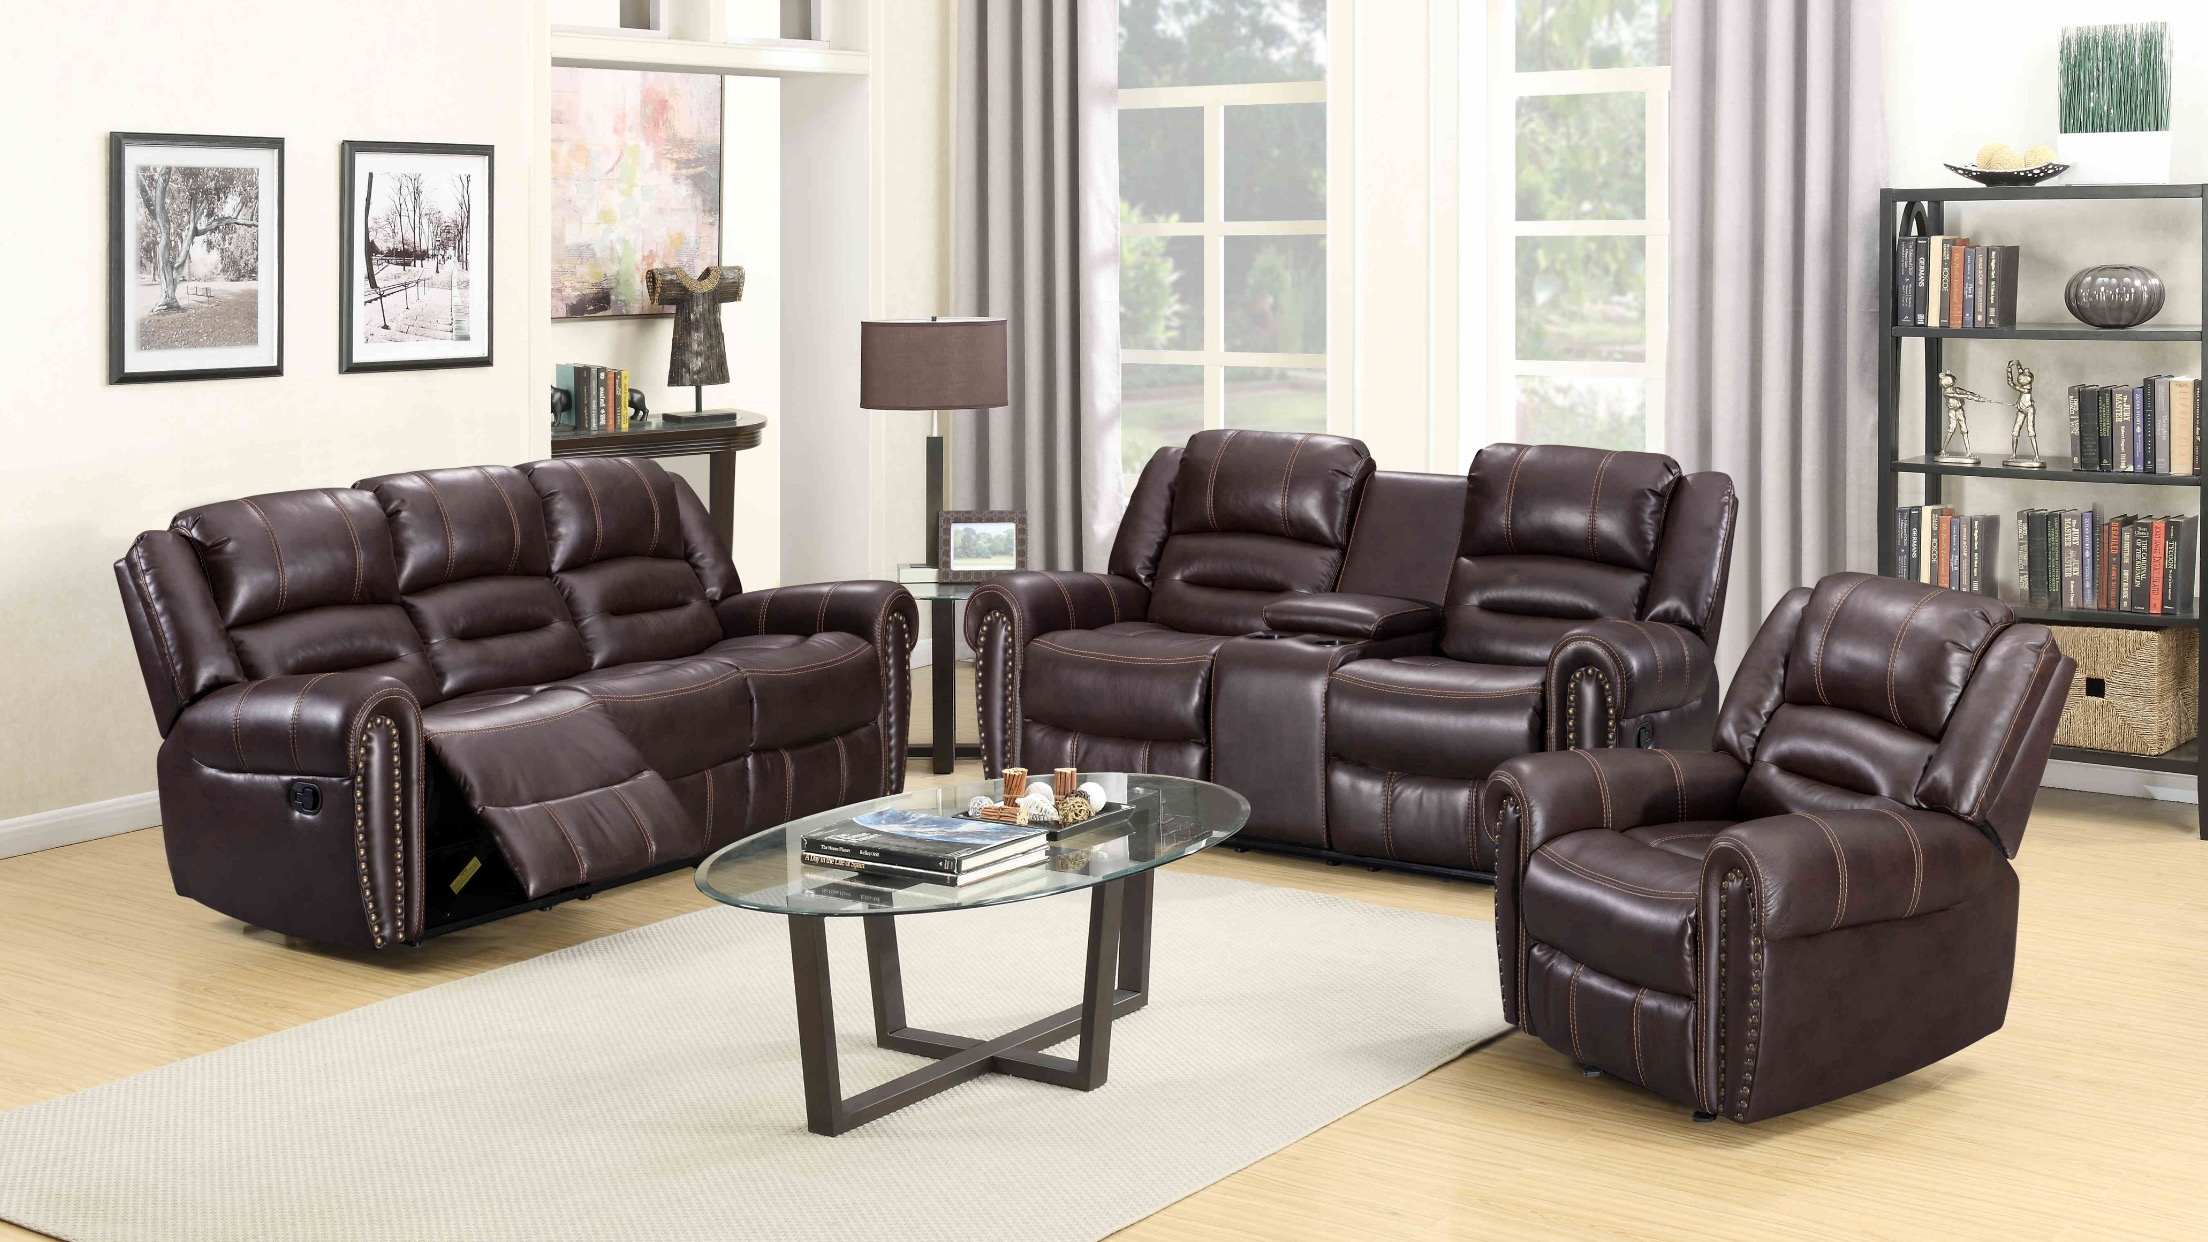 nora brown leather reclining 3 pc living room sofa set sectional sofas toronto stores lexington loveseat and